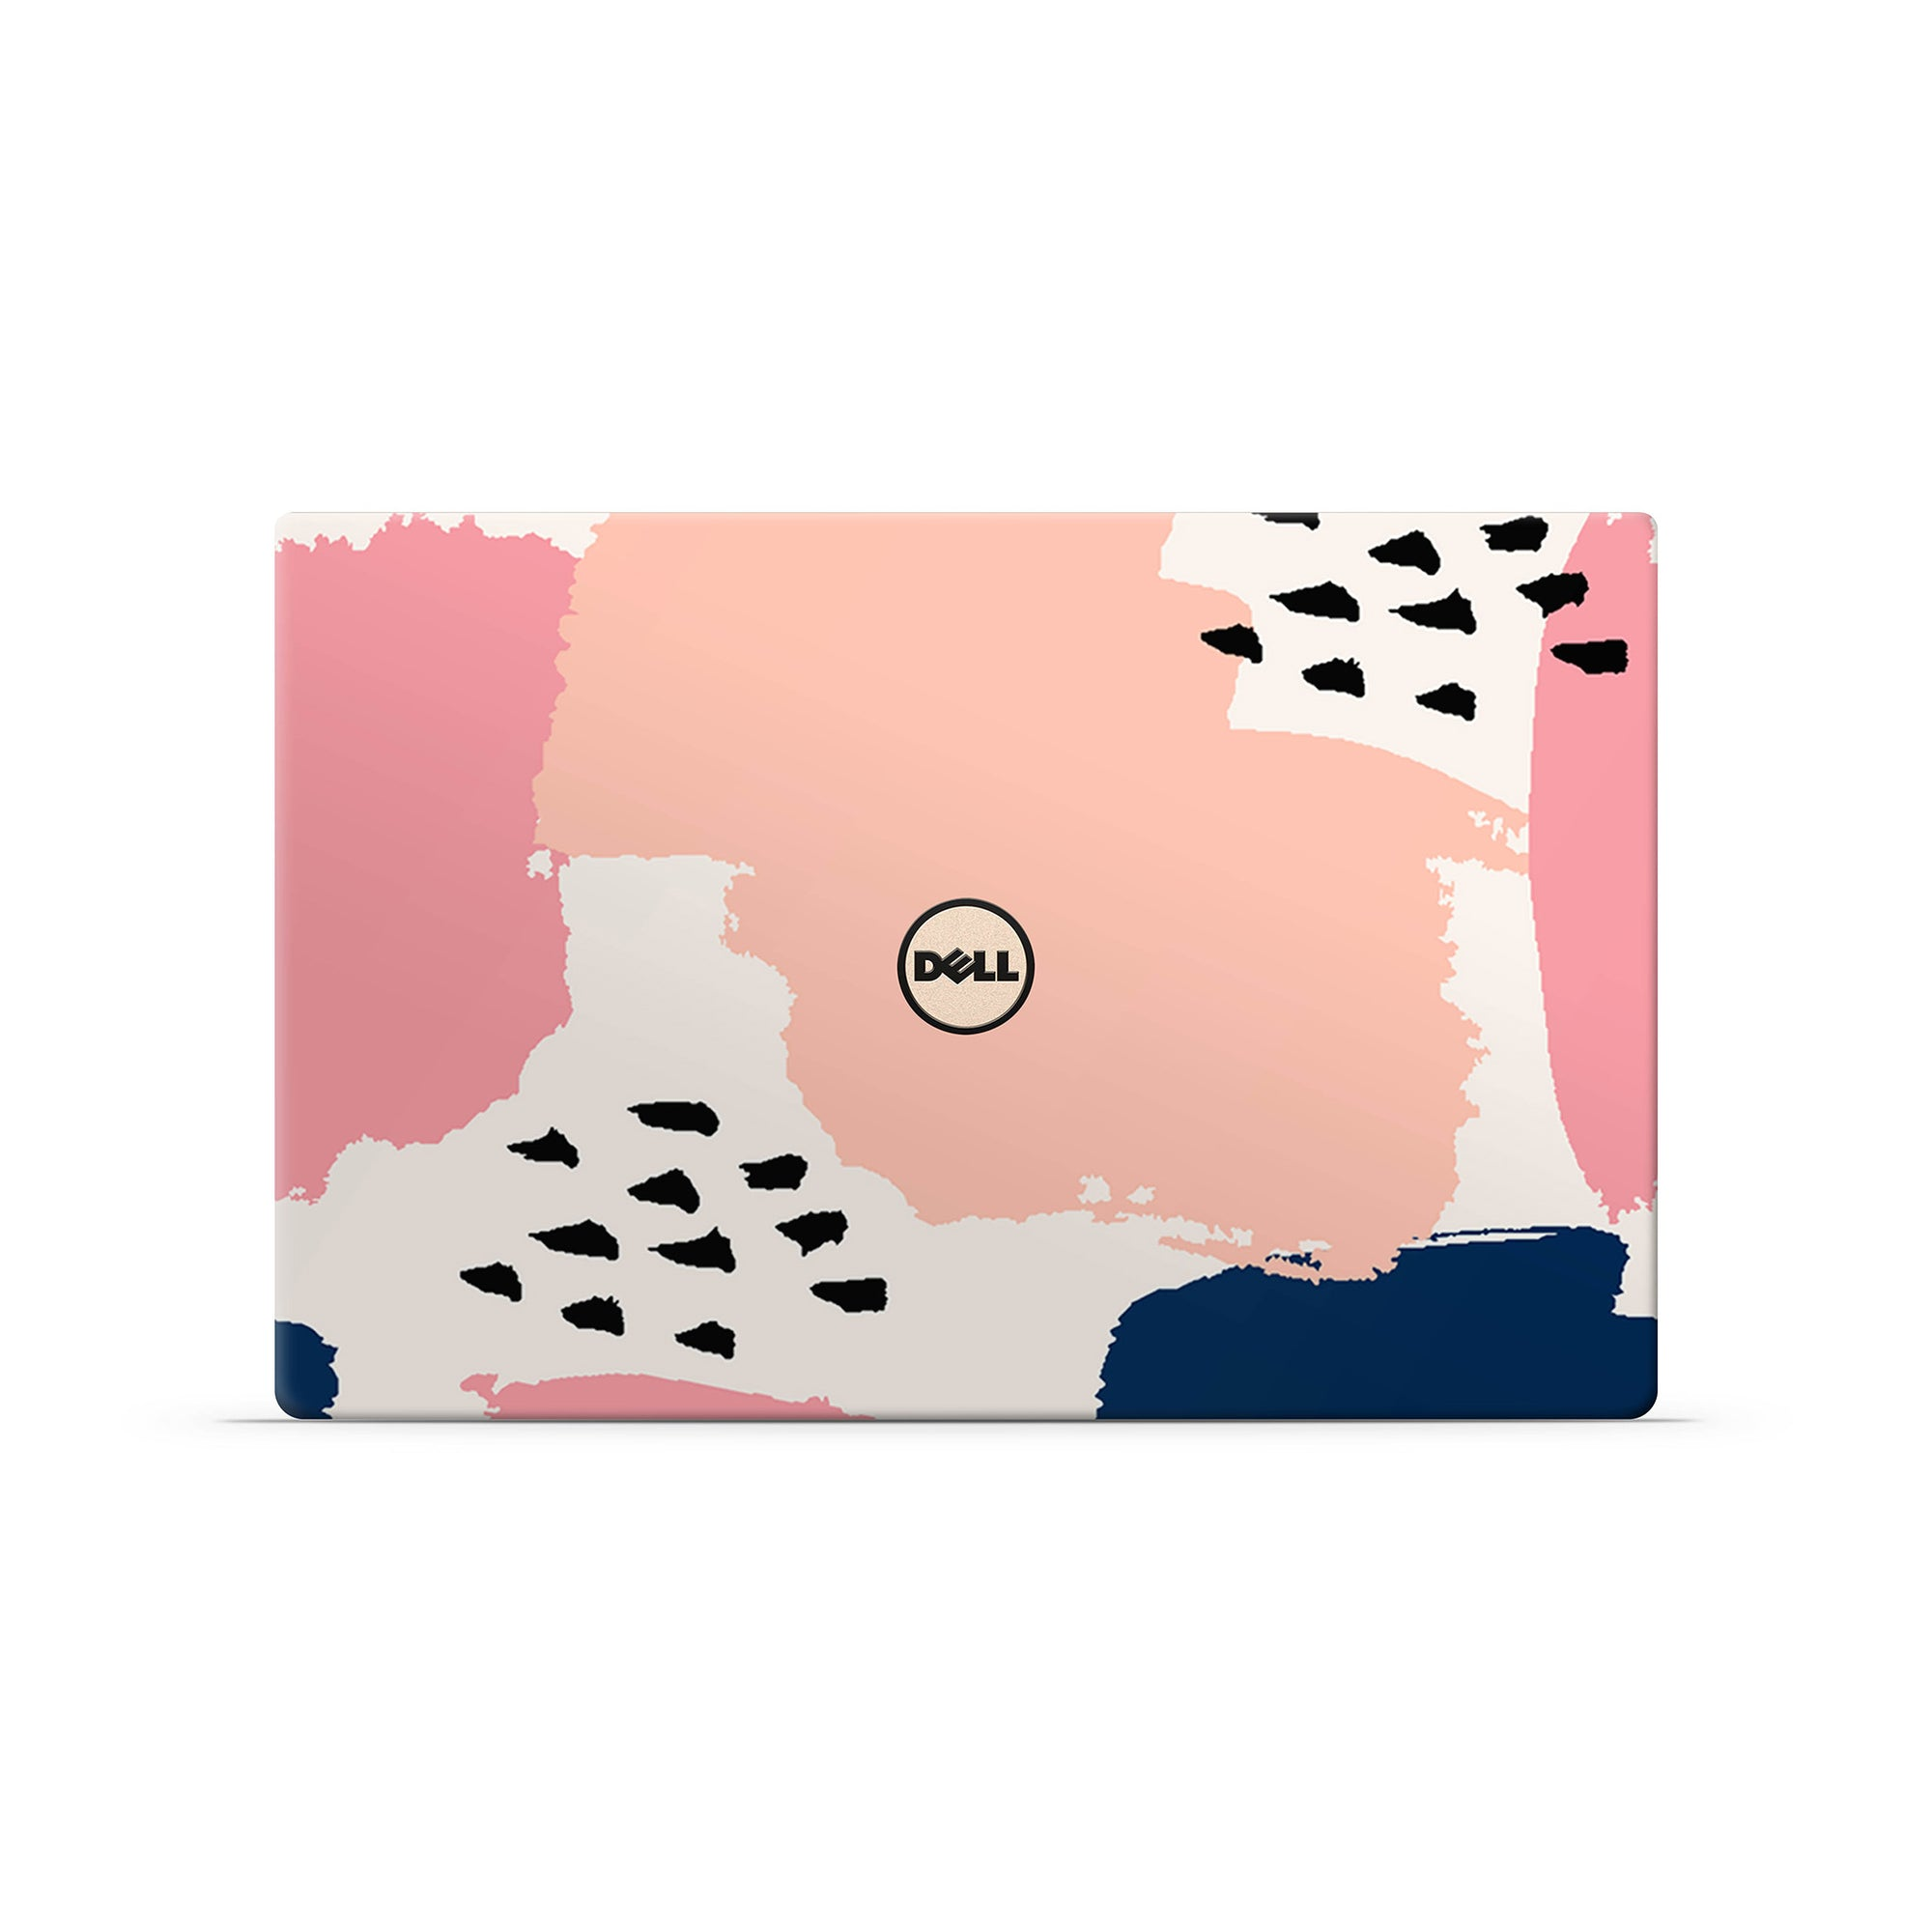 Miami Vice XPS 13 (9300) Skin